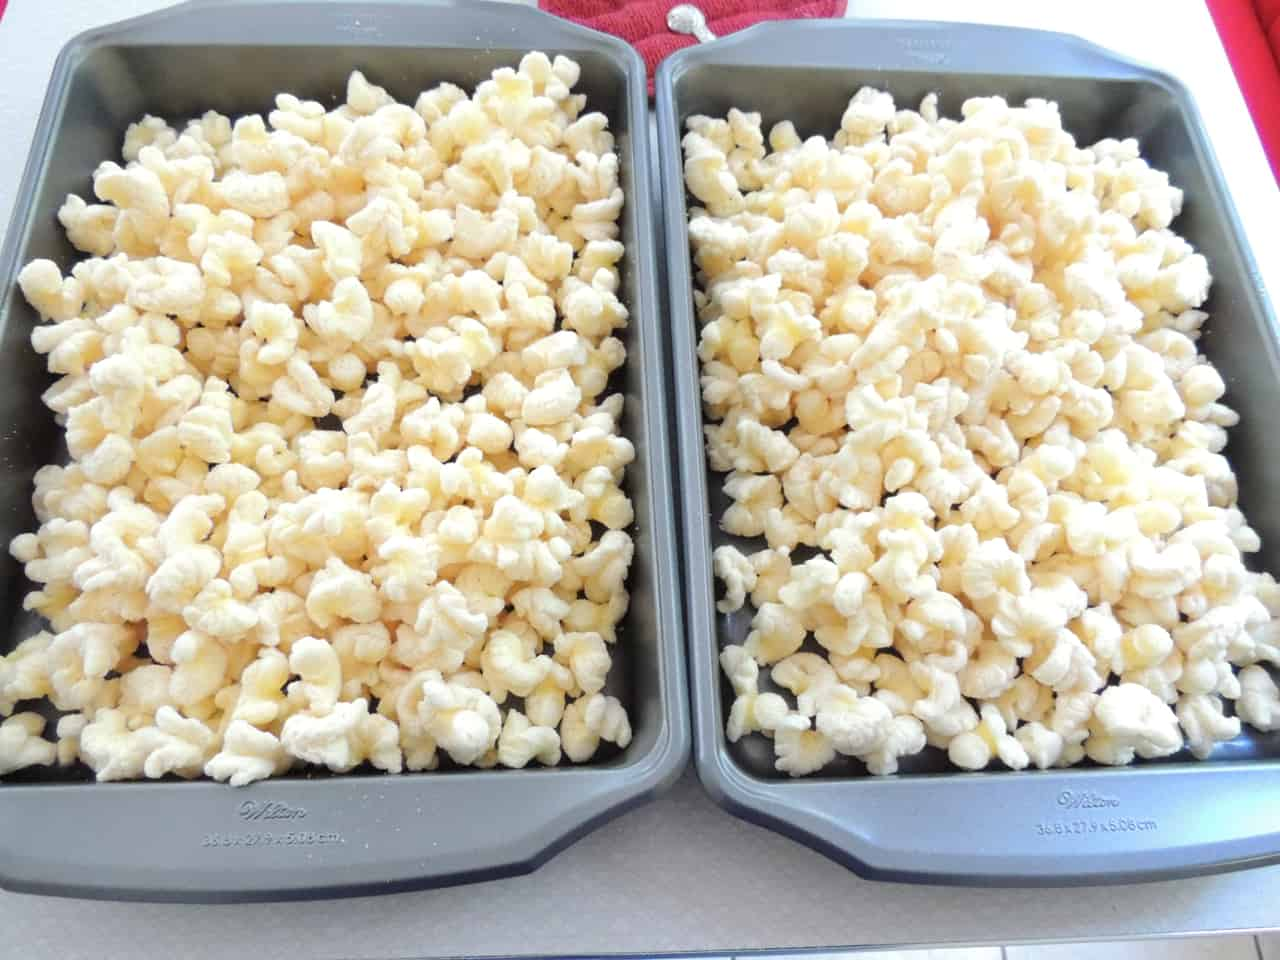 Page2 likewise 83105555596757277 together with Bacon puffs old dutch moreover Is Your Life A Barrel O Fun furthermore Old dutch caramel puff corn recipe. on old dutch caramel puffed corn recipe